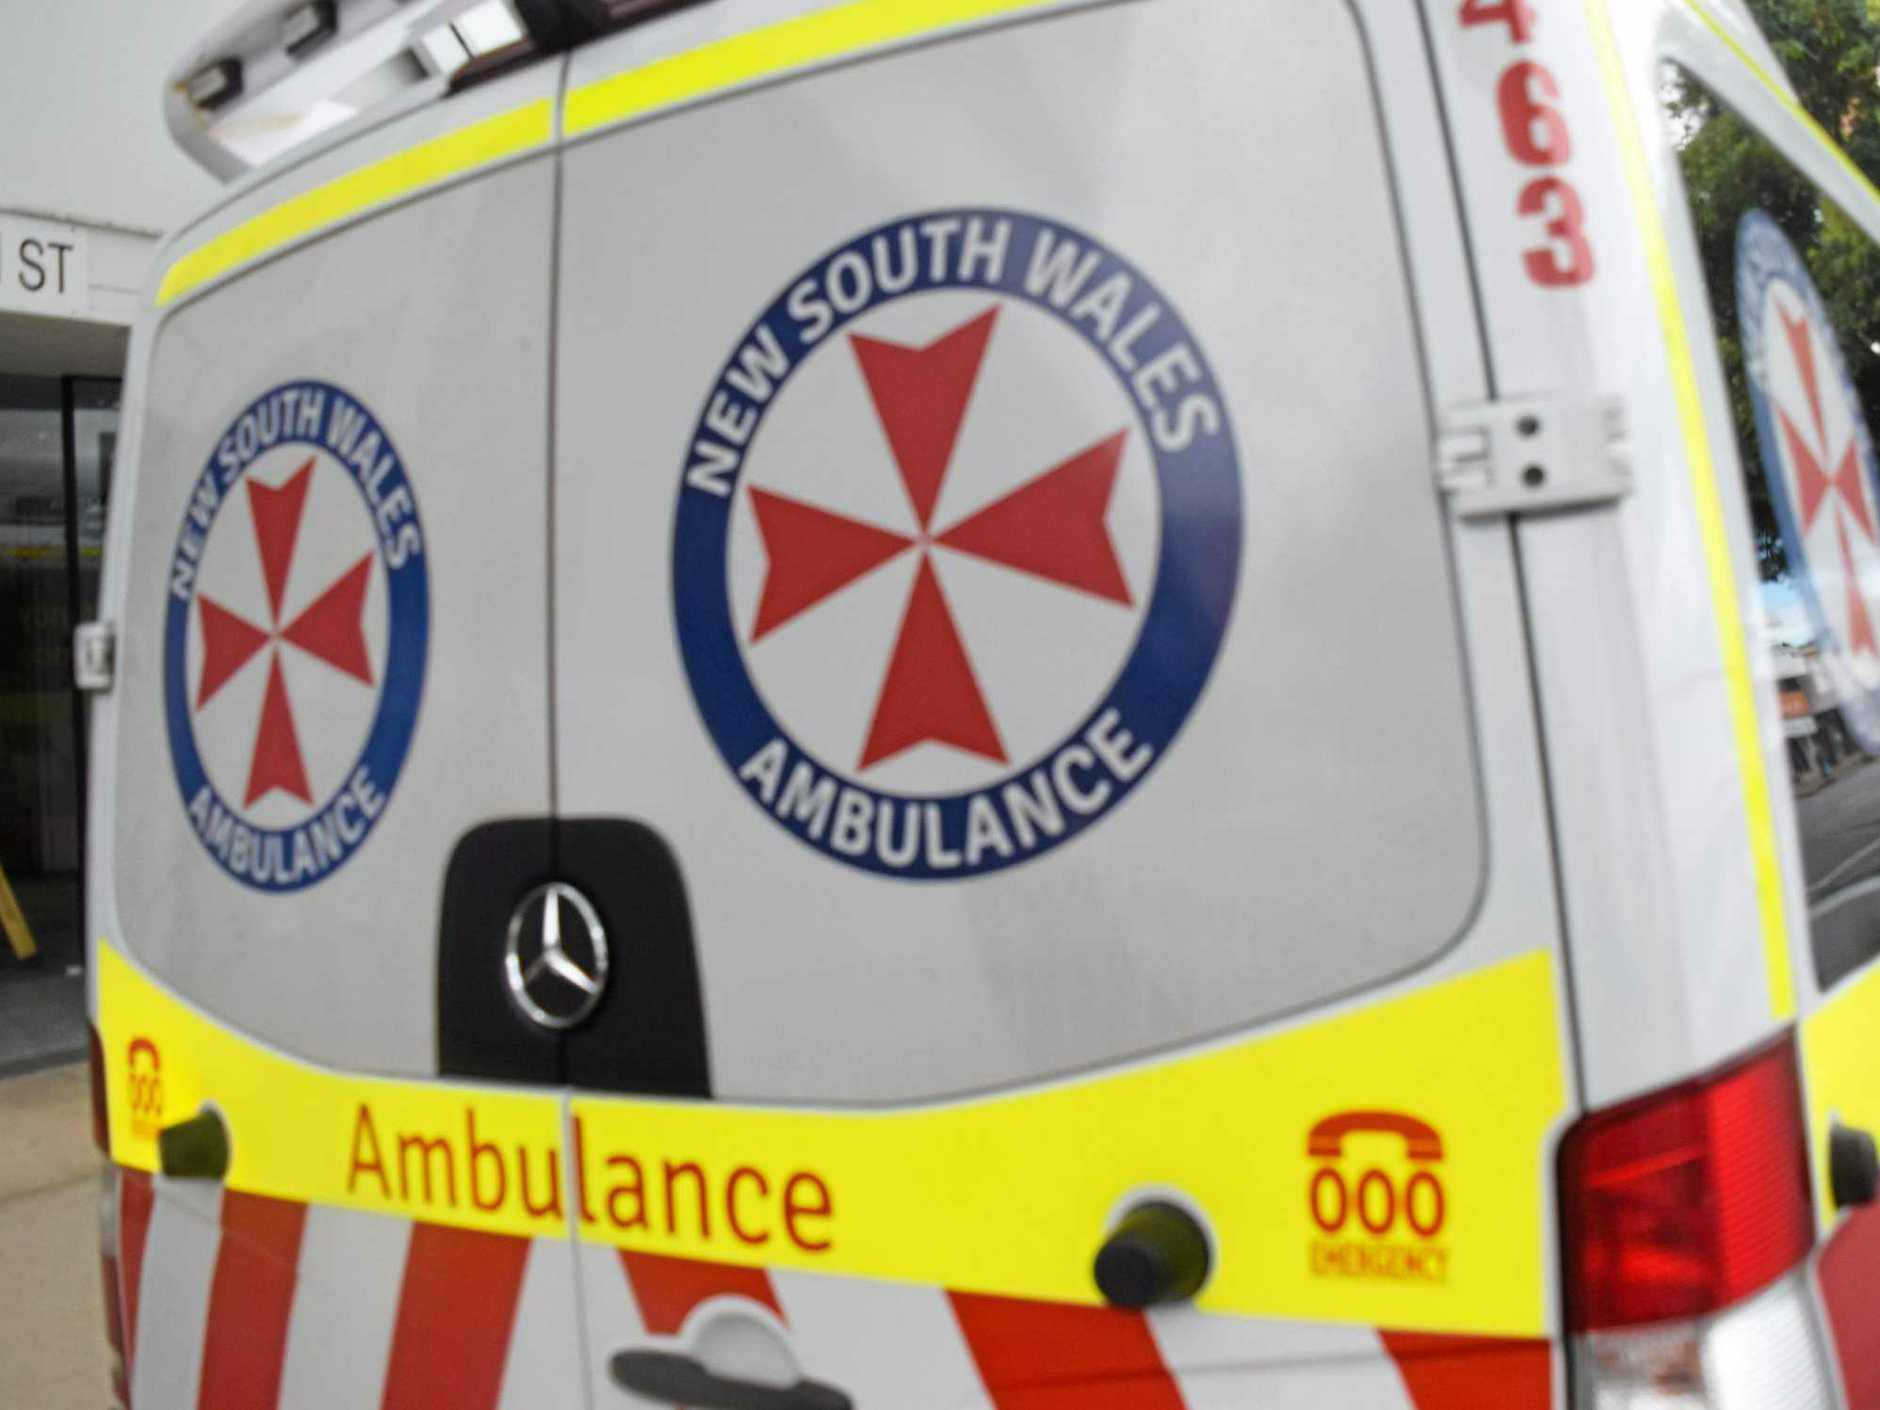 A 76-year-old woman, from Tweed Heads,was taken to Gold Coast Hospital in a critical condition after a two-vehicle crash.